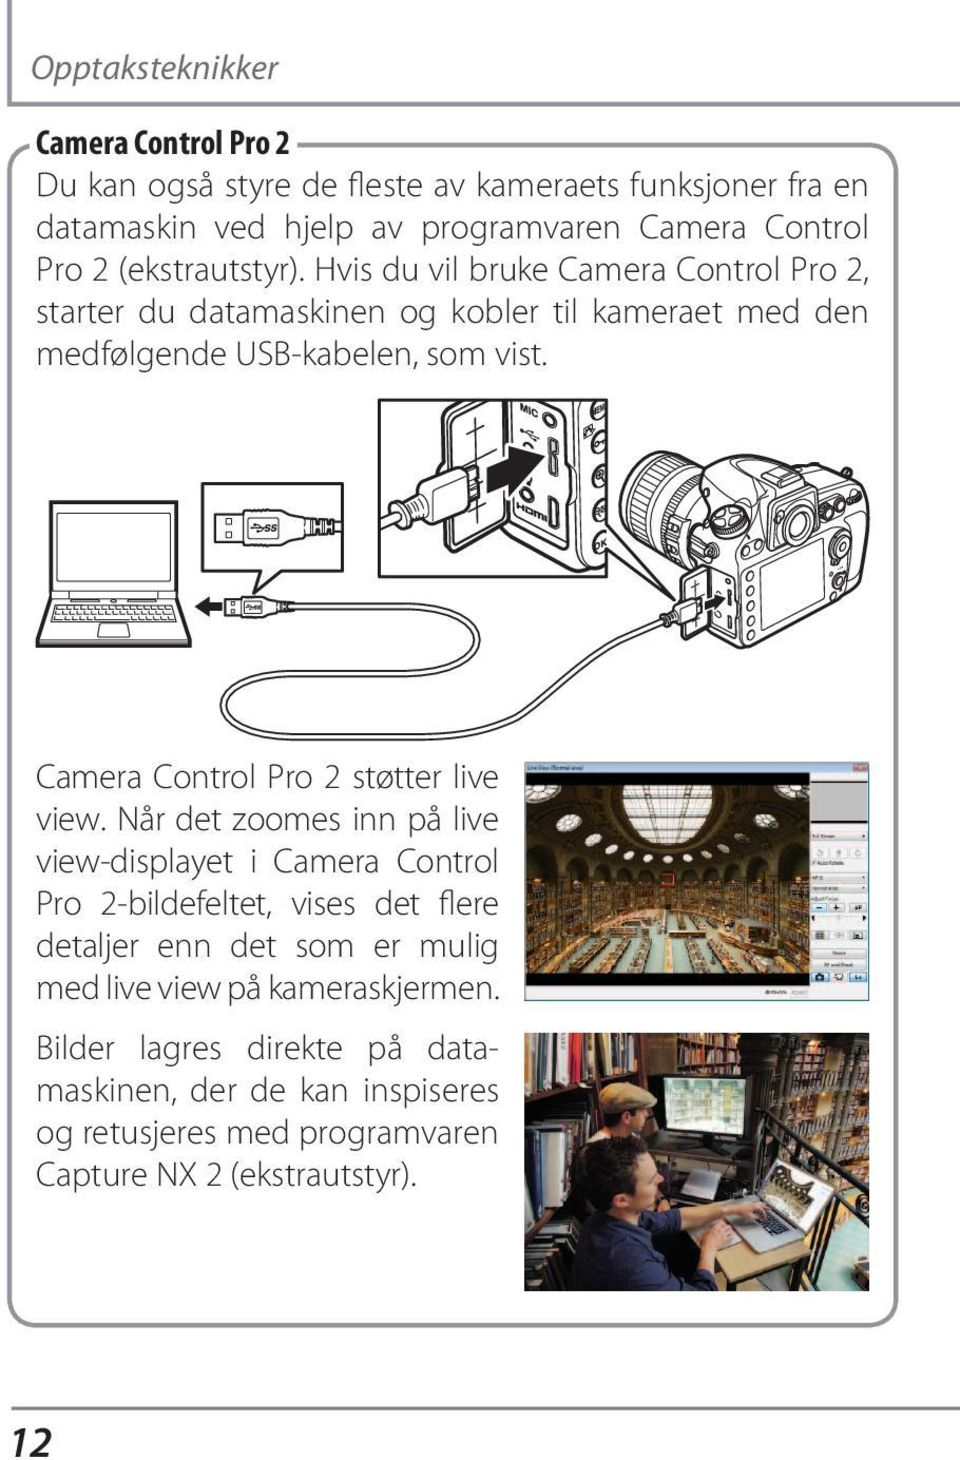 Camera Control Pro 2 støtter live view.